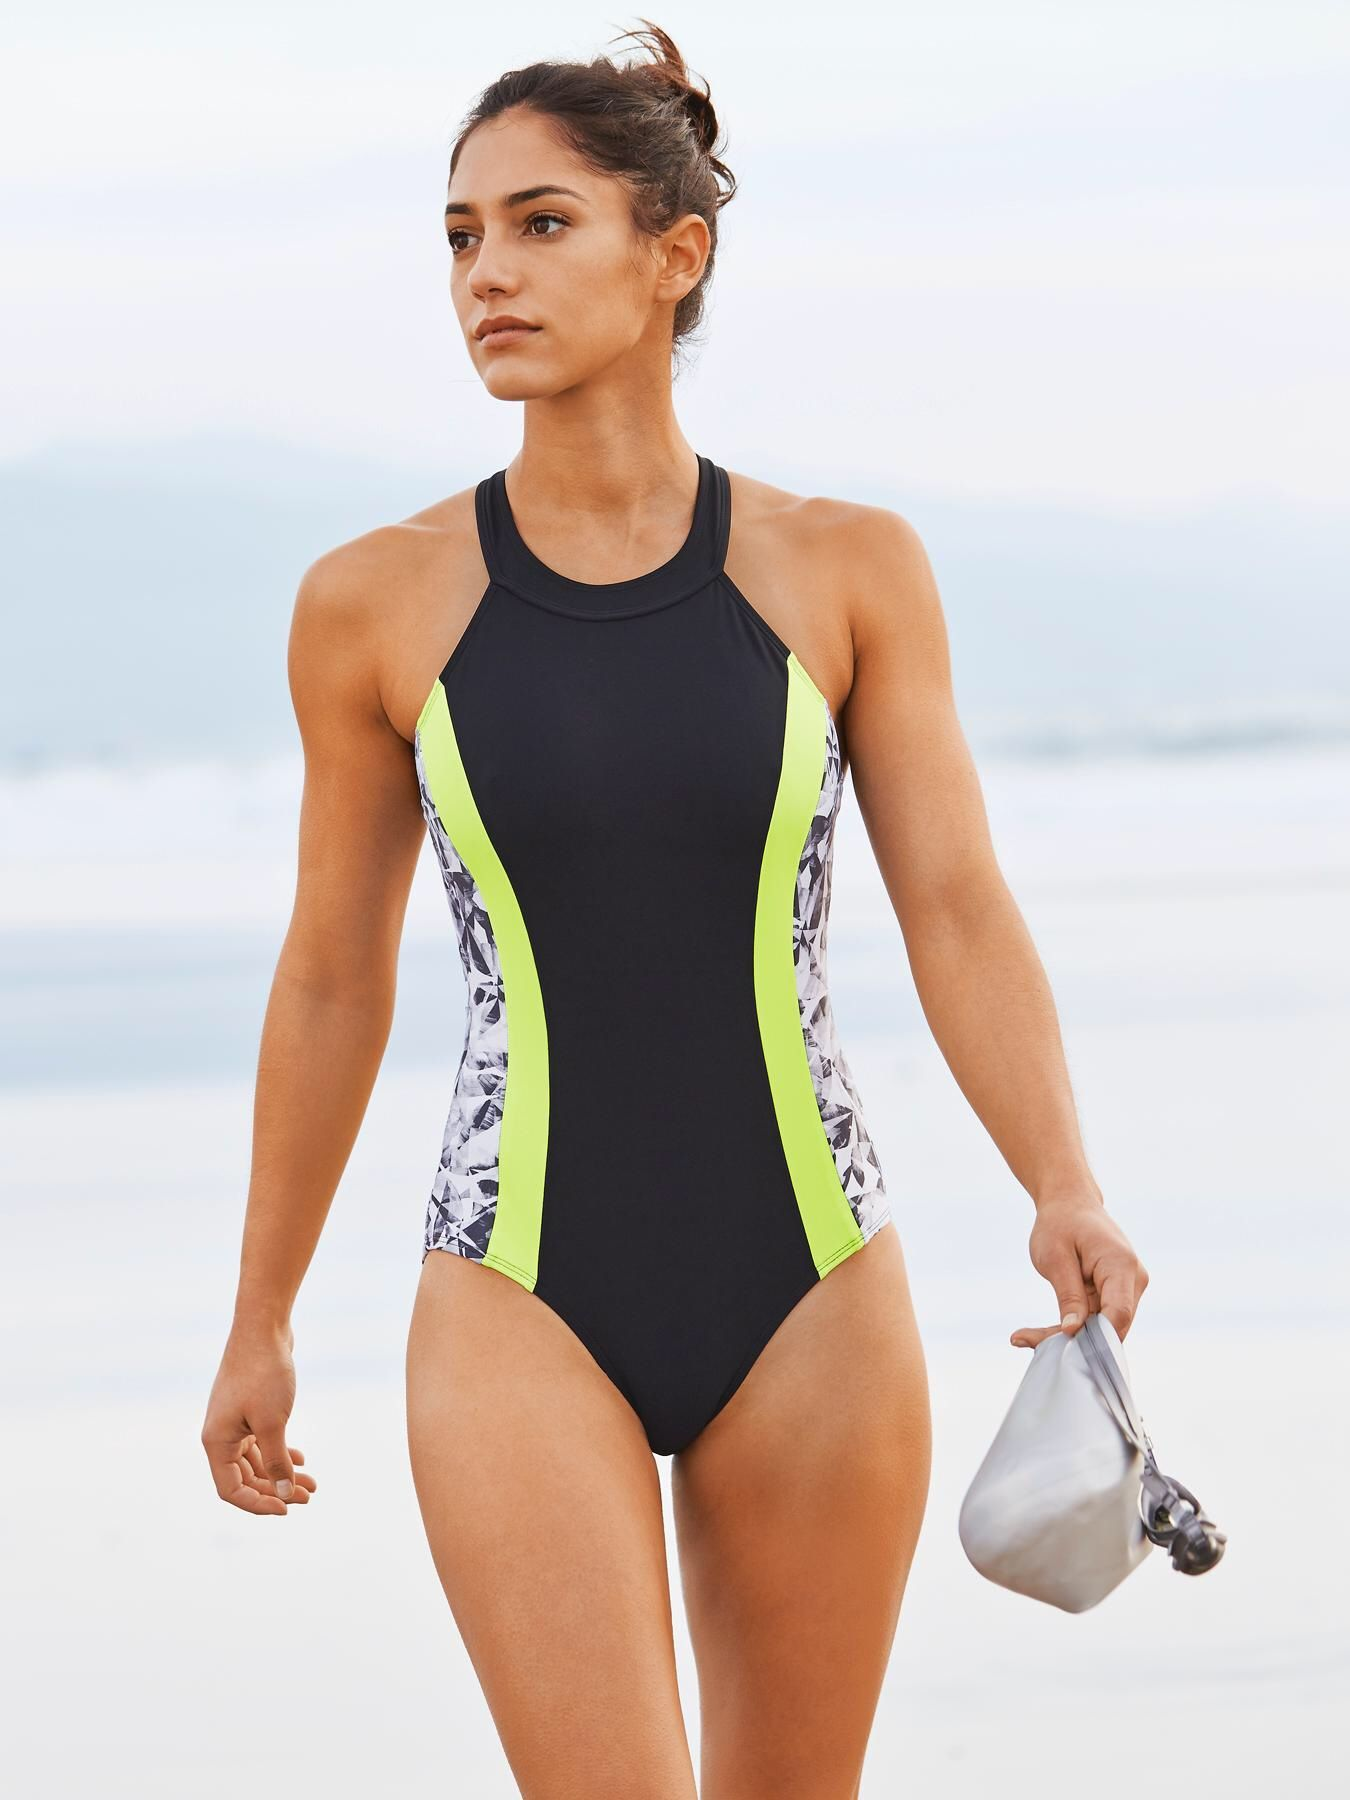 9fcc0097d0 Allison Stokke: Brains, beauty and pure talent. Cute Bathing Suits, One  Piece Swimsuit Sporty ...